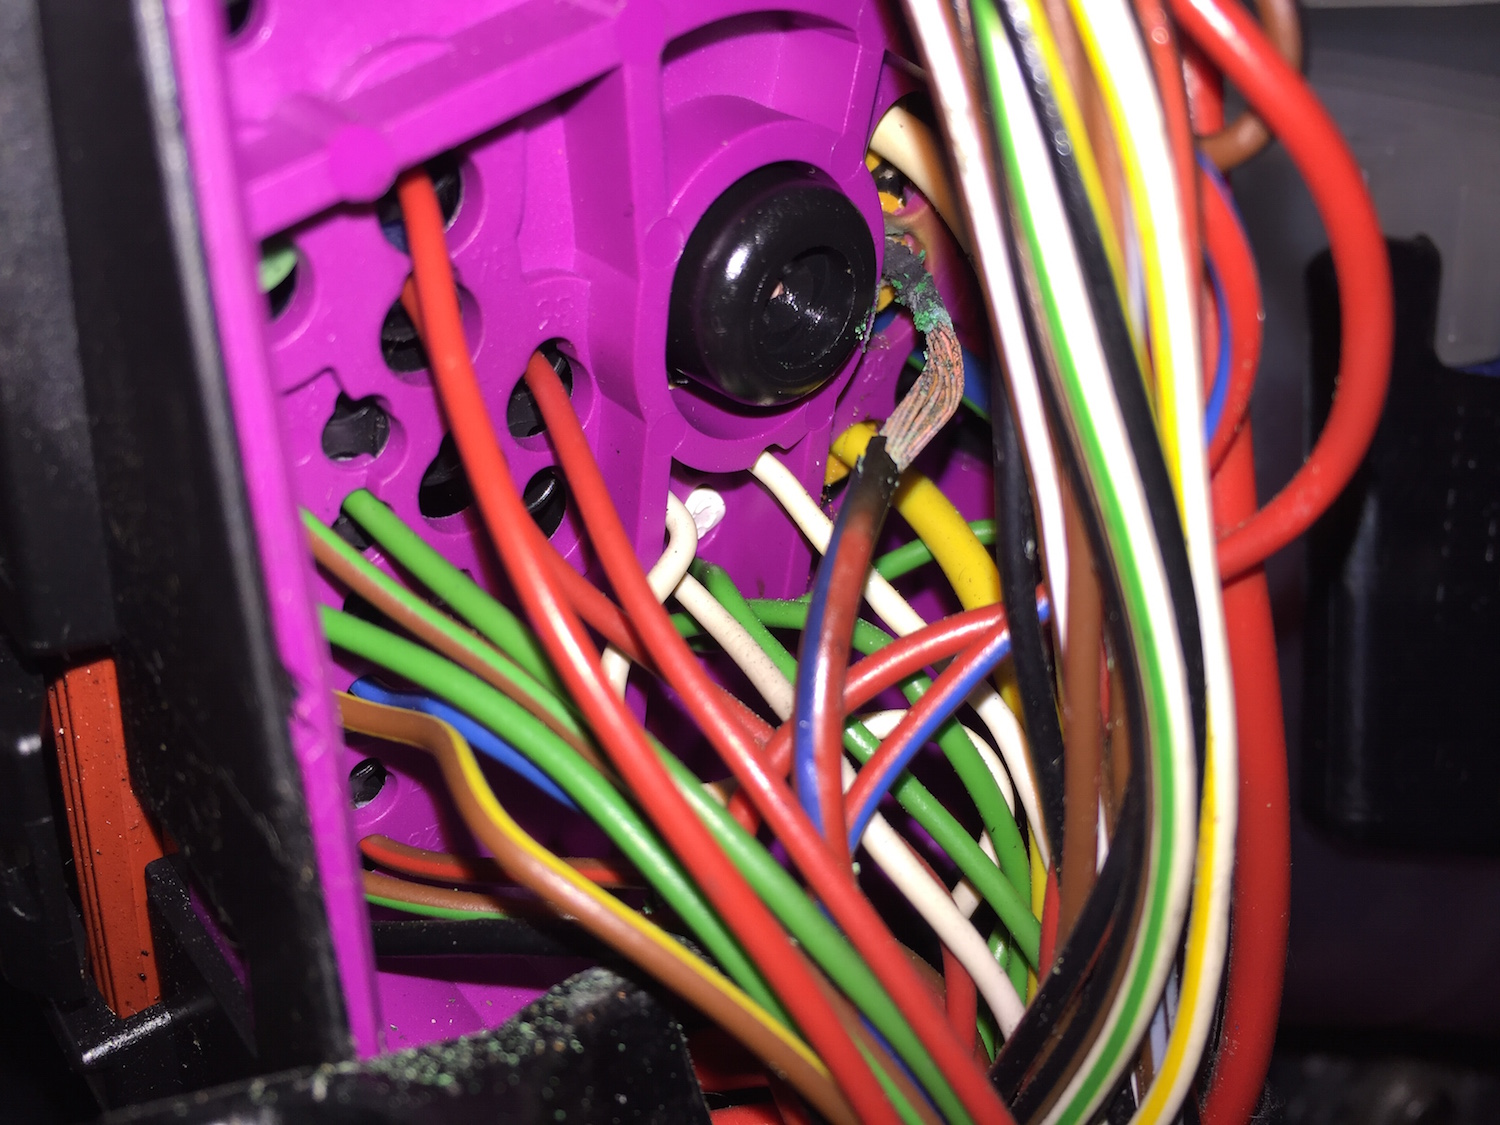 Well that was unexpected astra h vxr sprint pin 56 plug x2 wiring damaged asfbconference2016 Images